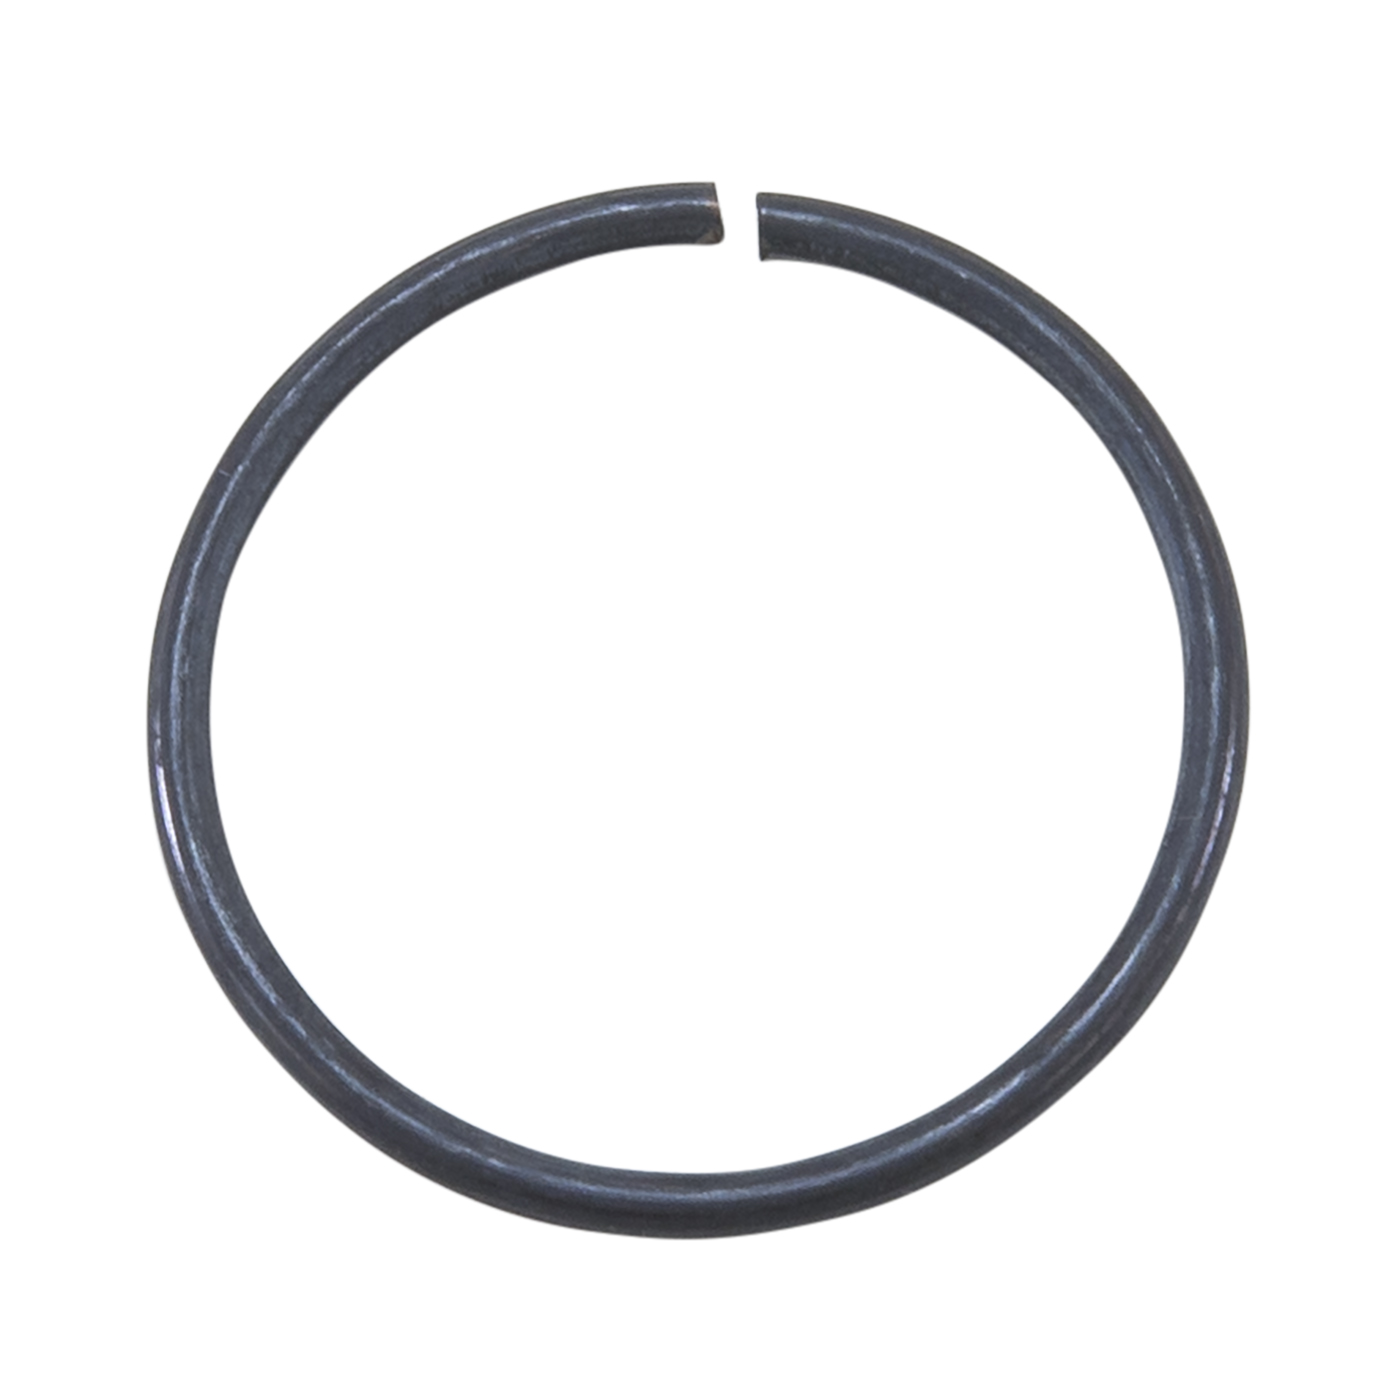 YSPSR-014 - Outer wheel bearing retaining snap ring for GM 14T